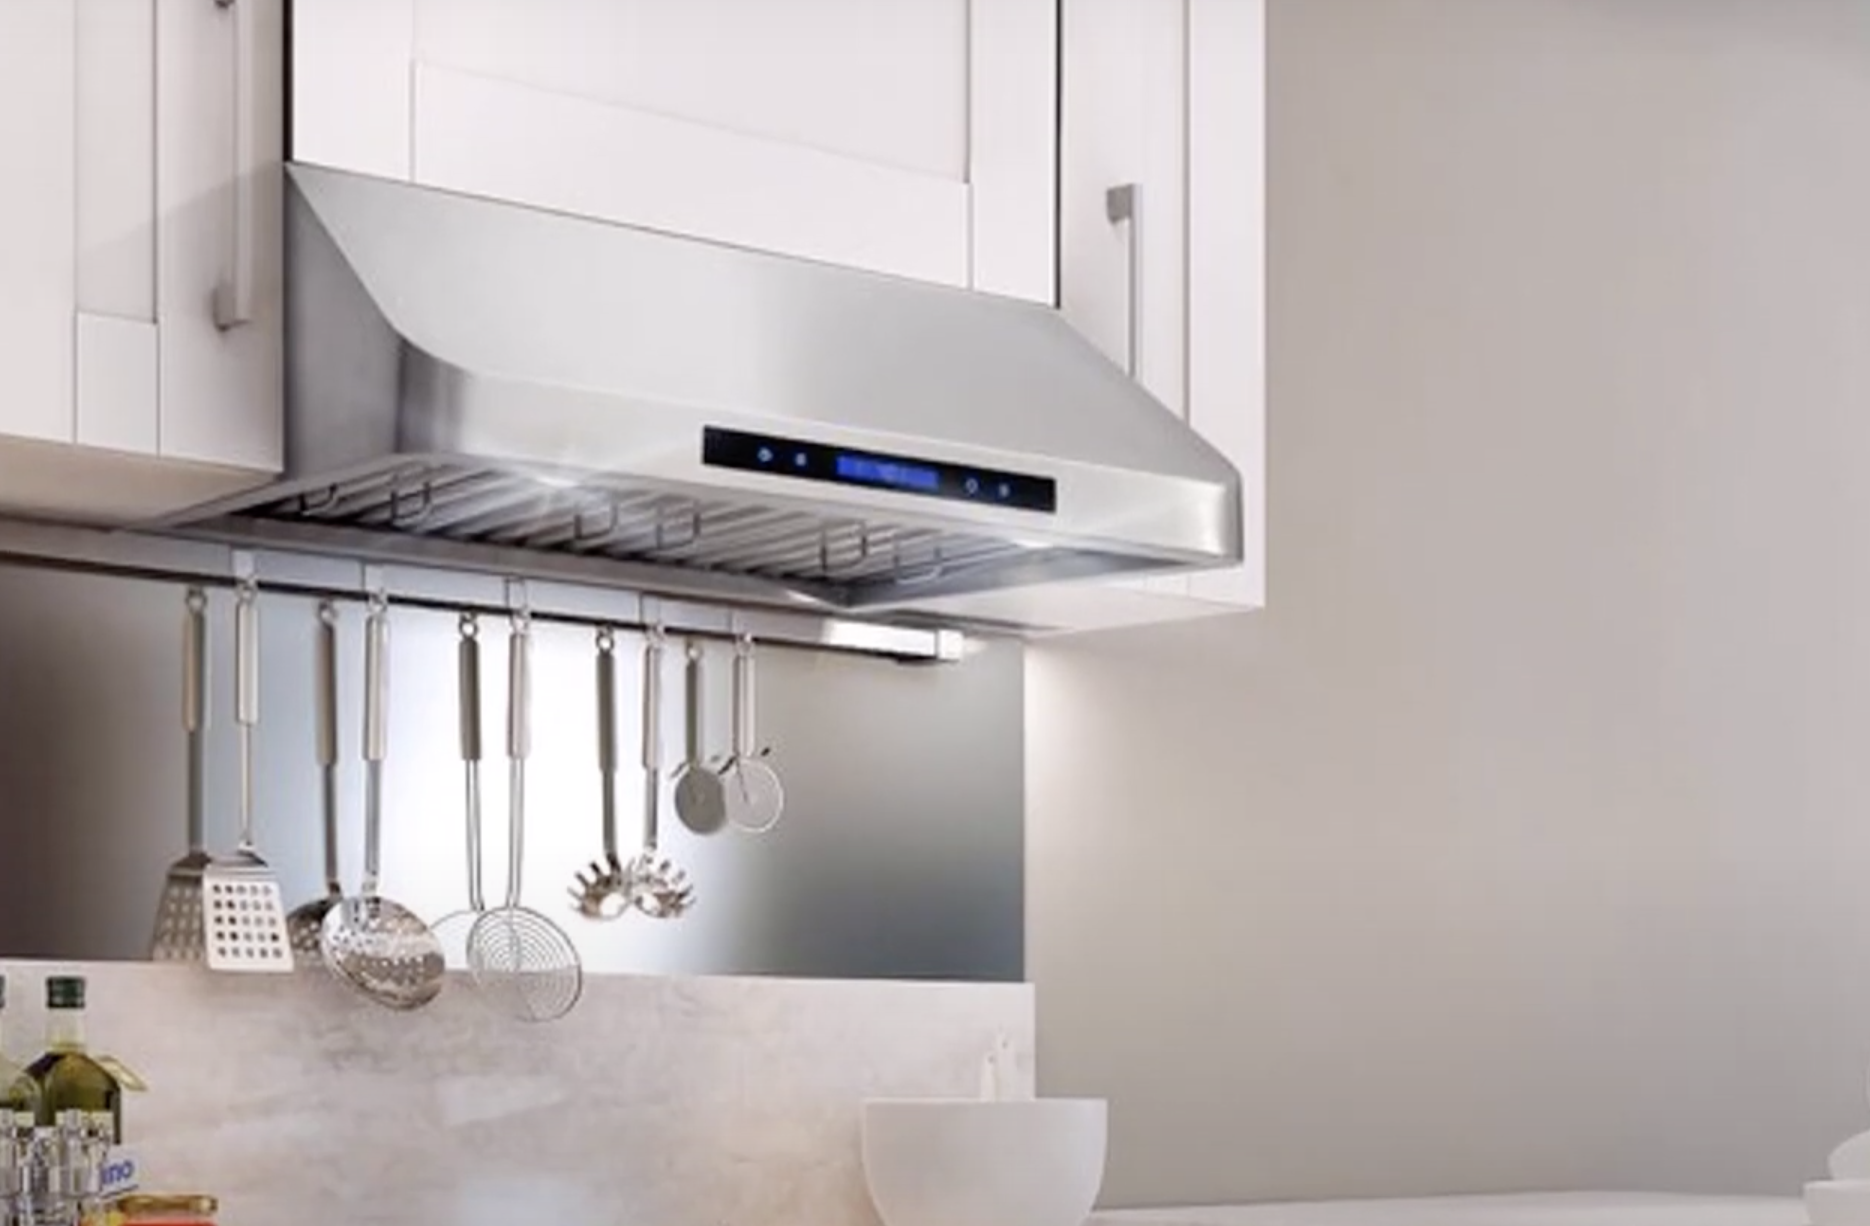 How to Choose a Cabinet Hood?